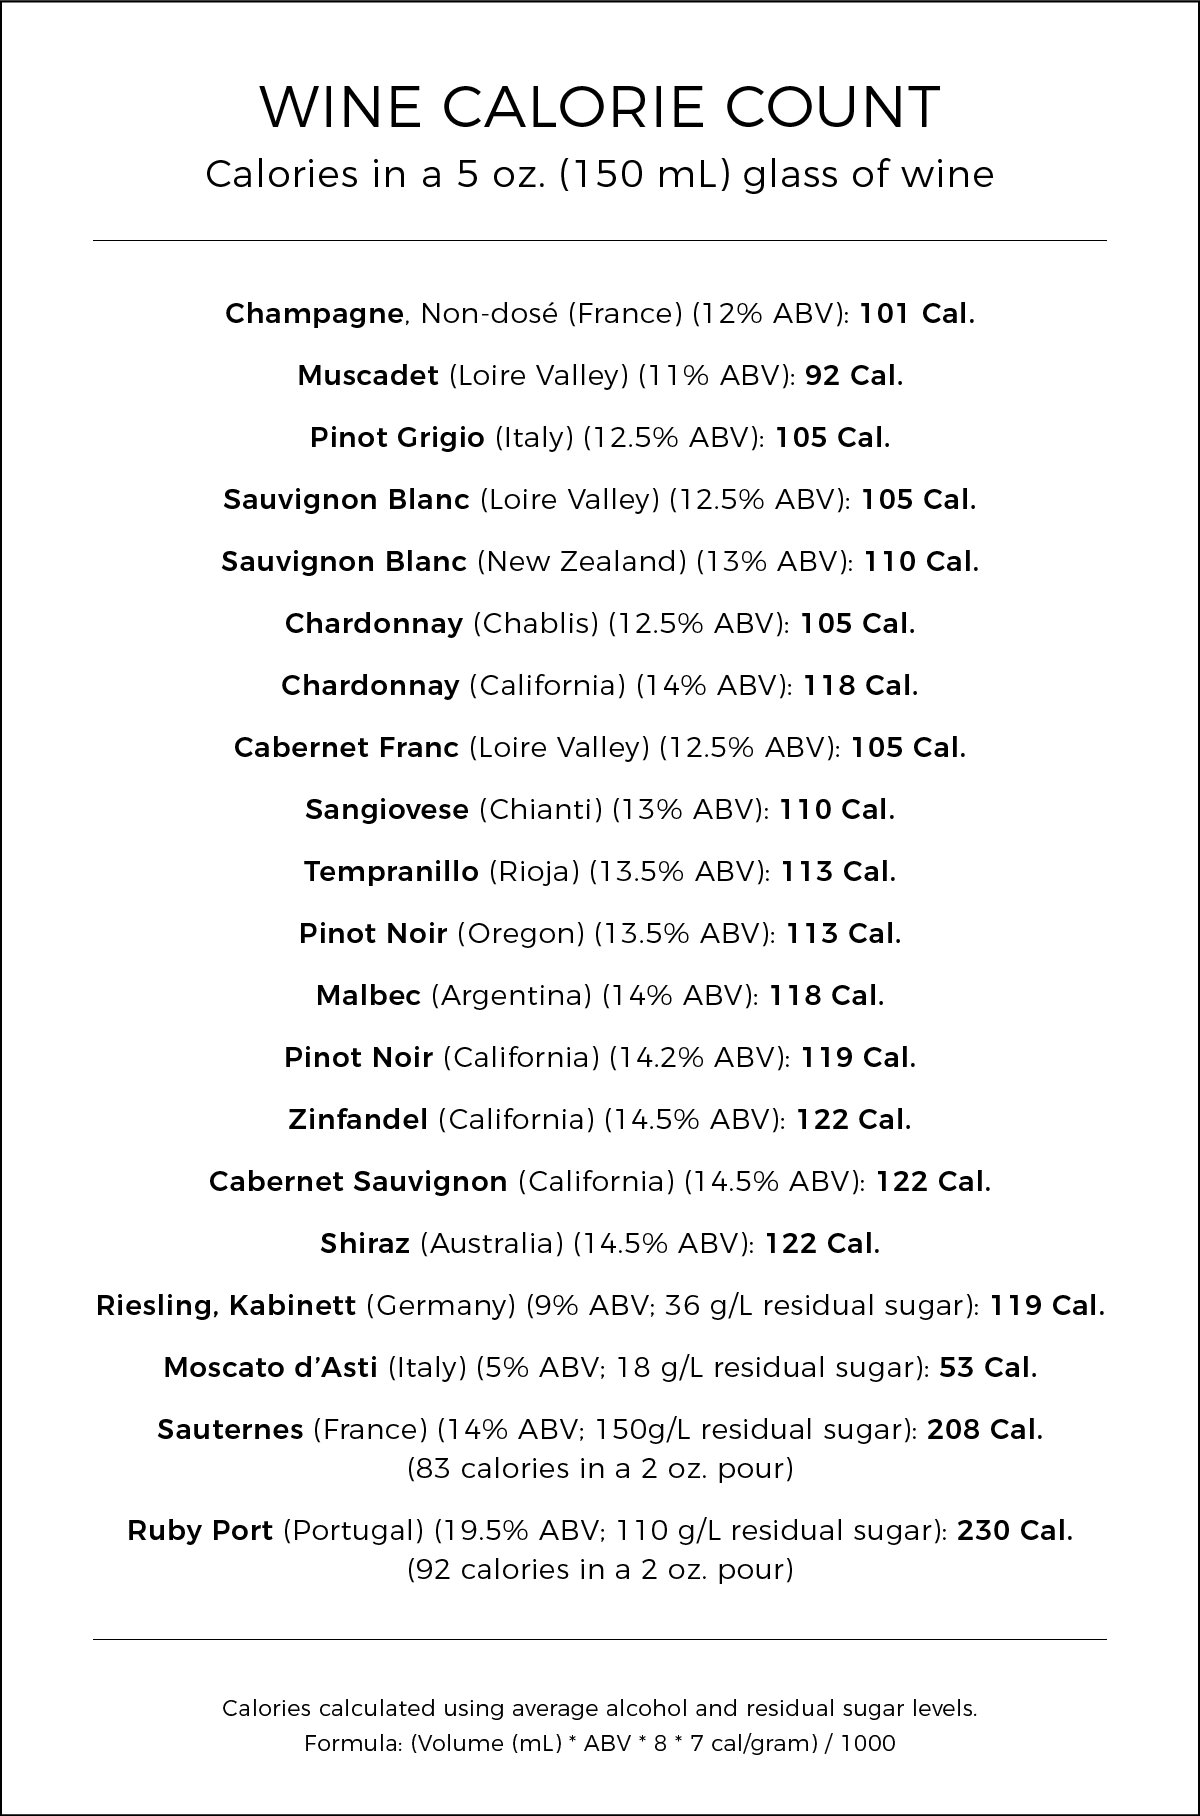 How Many Calories Are in Wine?